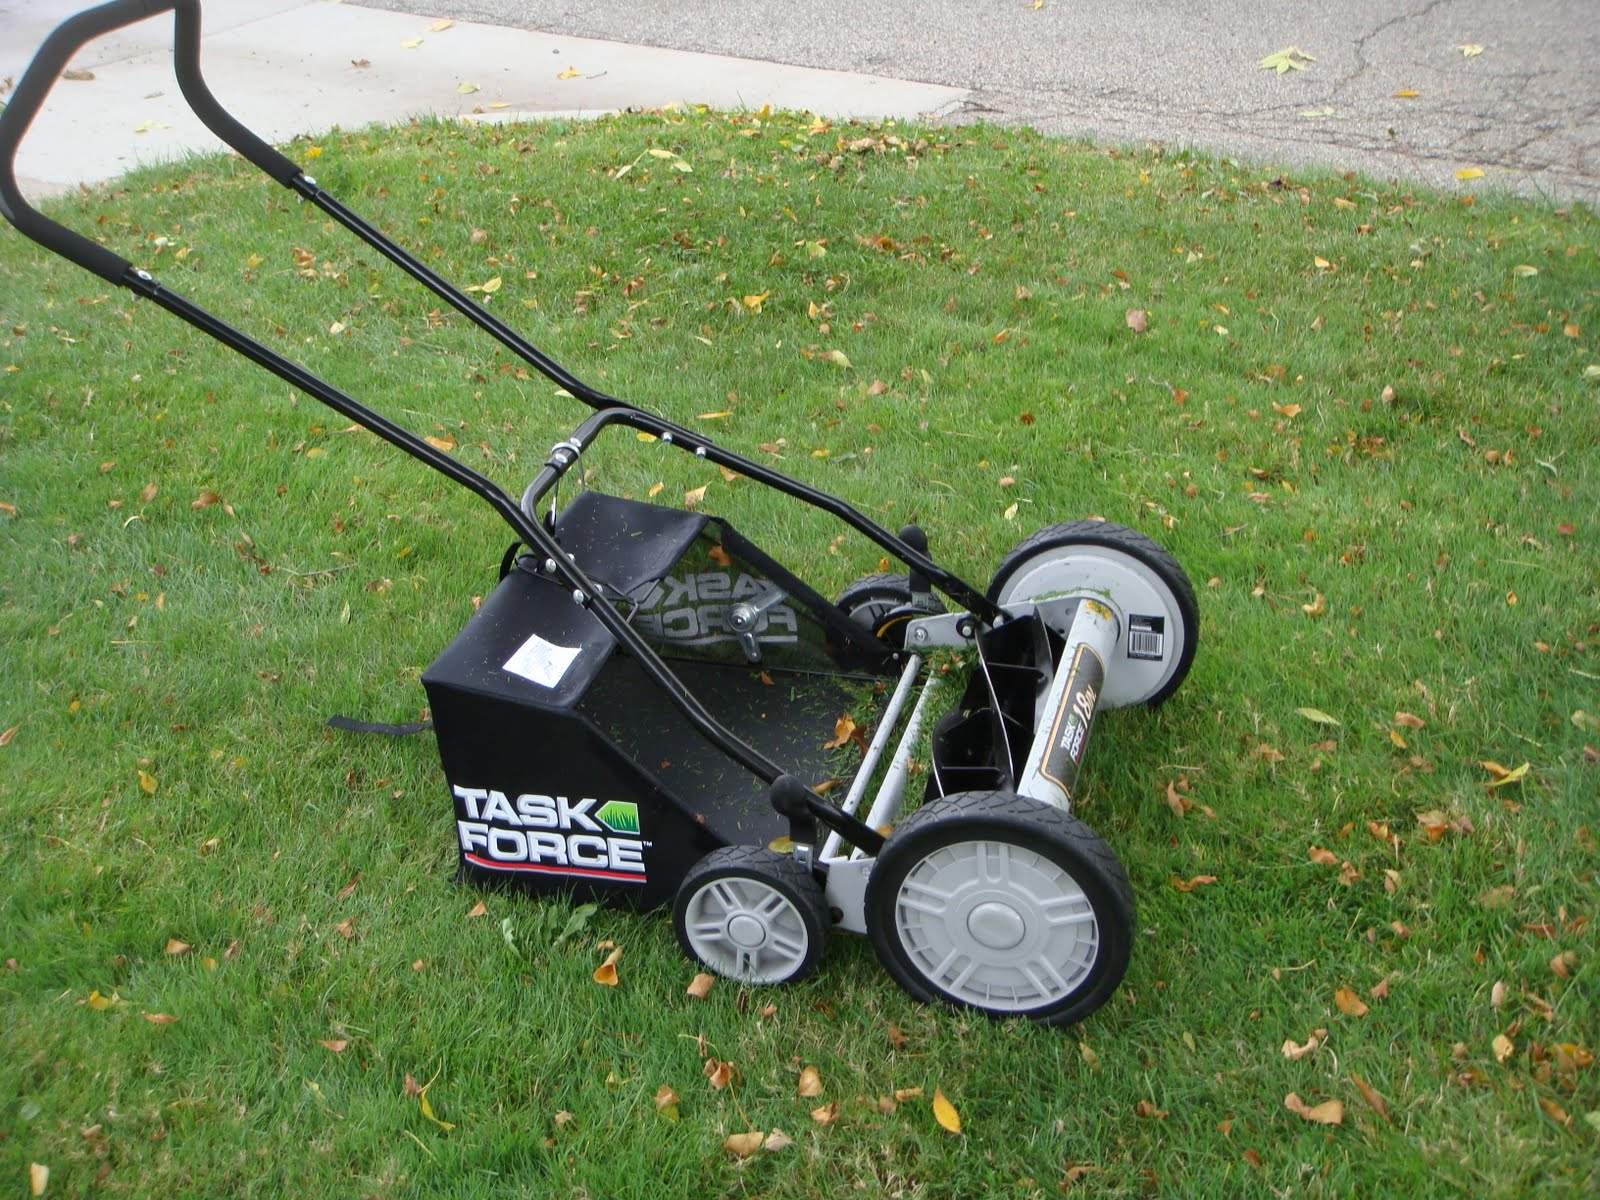 Task force mowers Lawn Mowers  Tractors - Compare Prices, Read